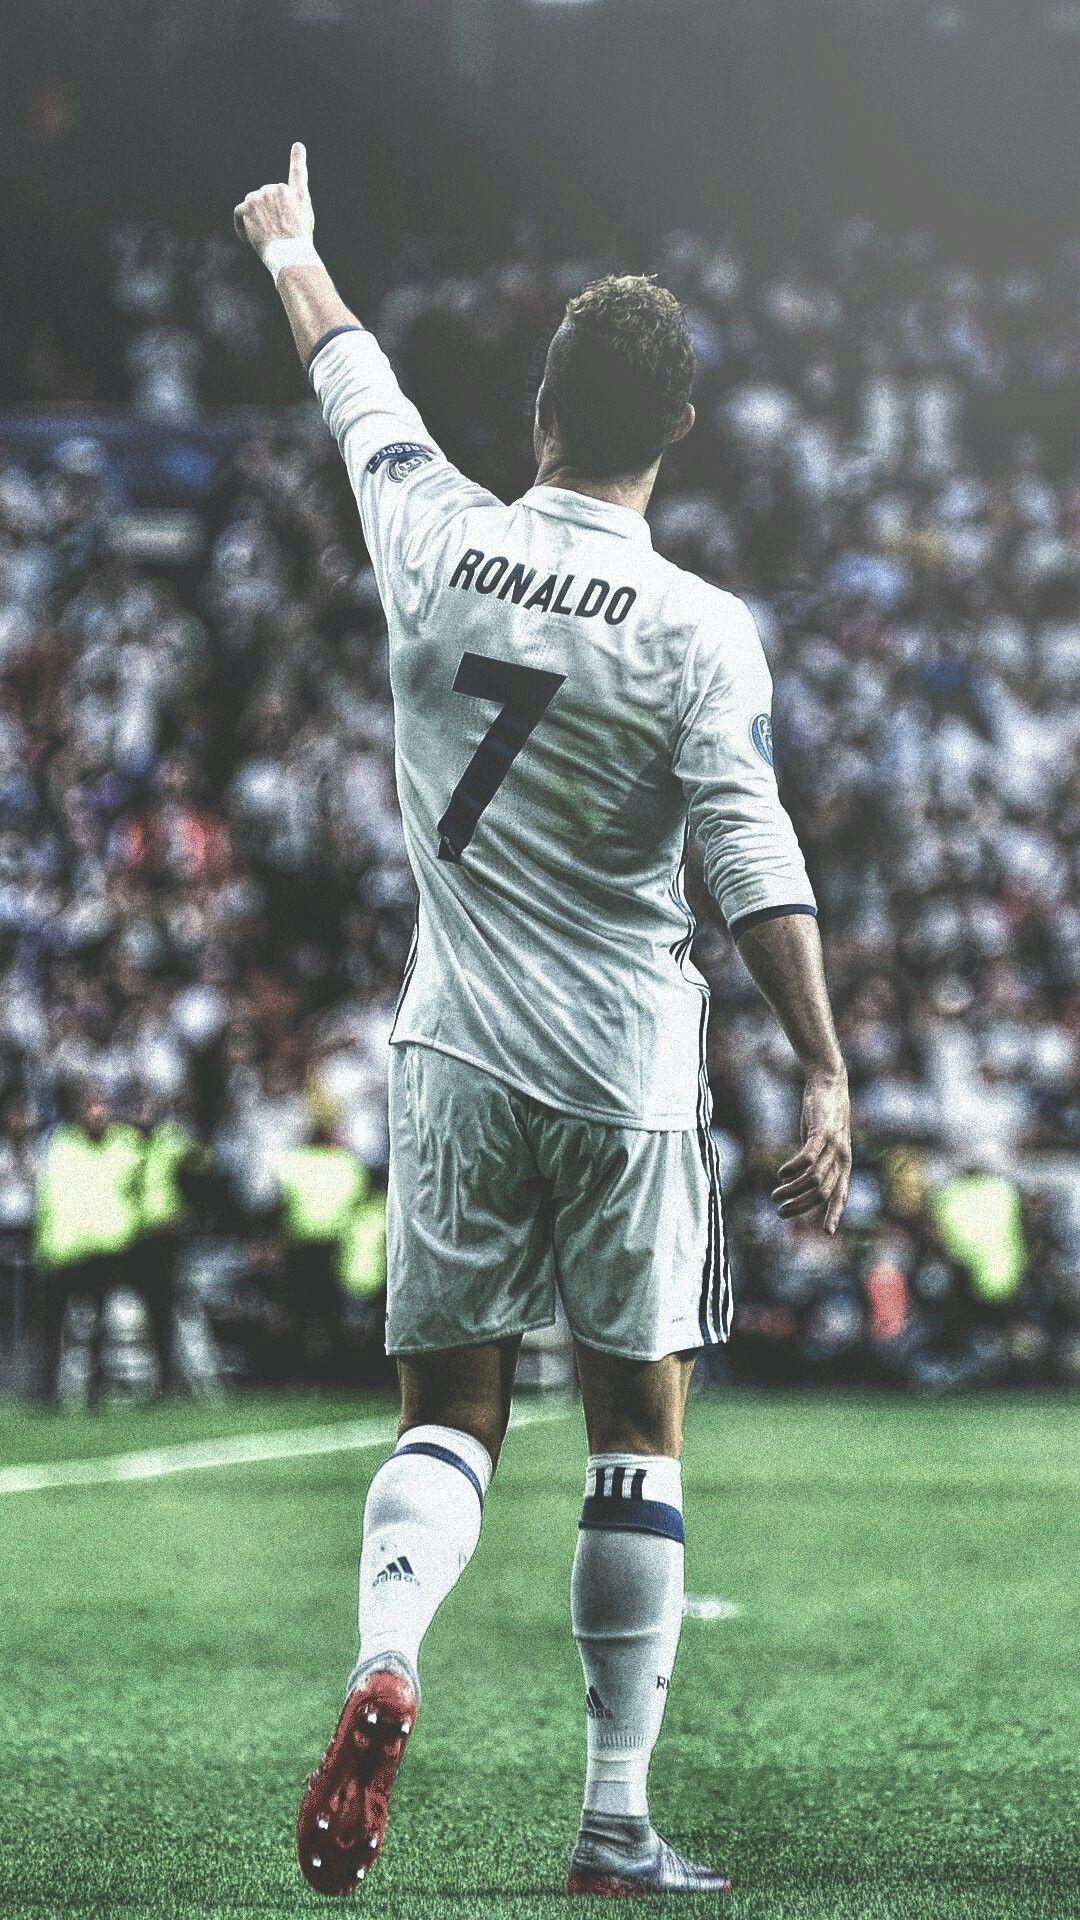 Ronaldo Hd 4k Mobile Wallpapers Wallpaper Cave